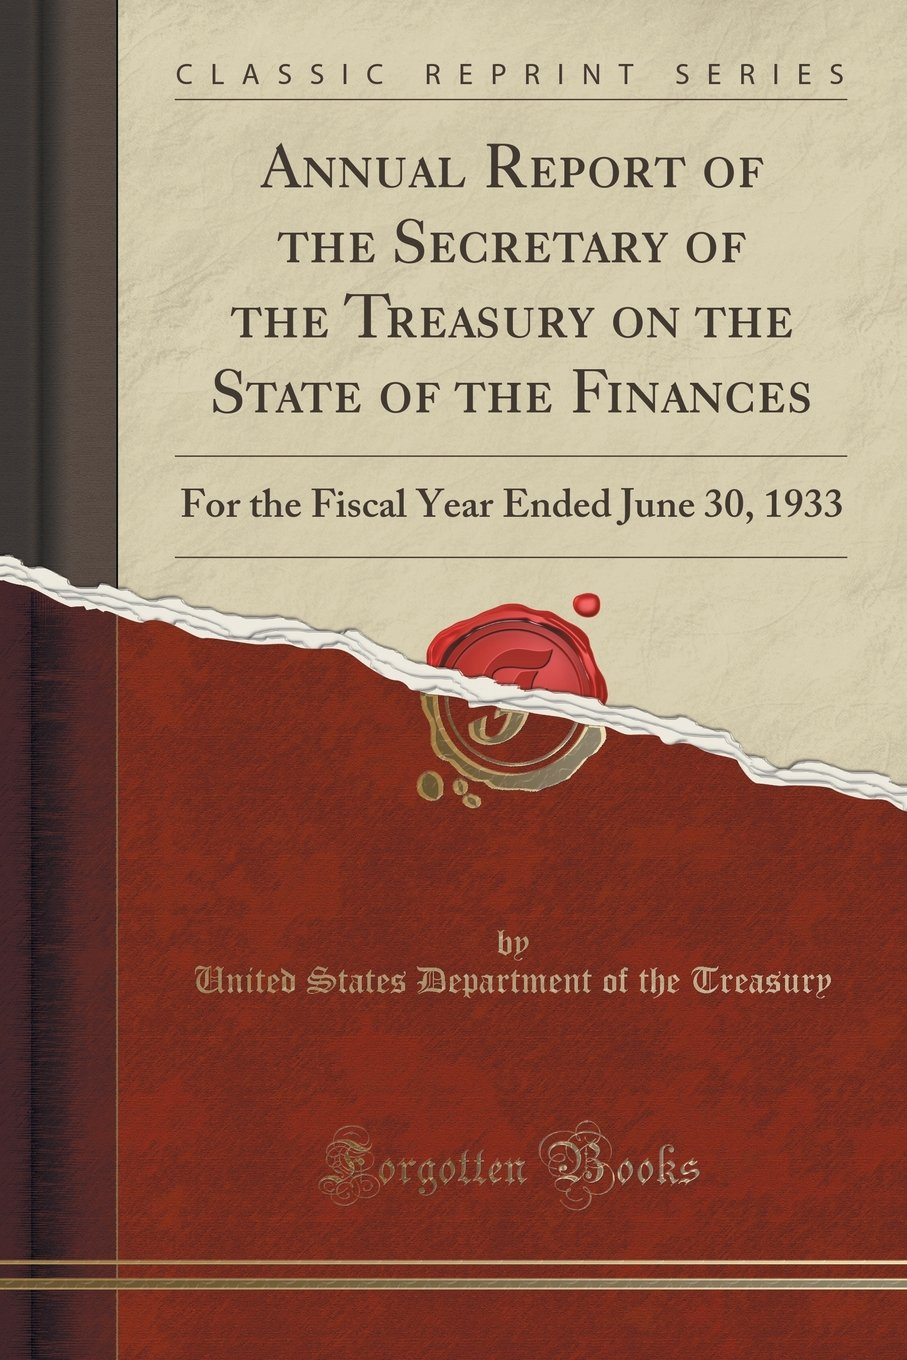 Annual Report of the Secretary of the Treasury on the State of the Finances: For the Fiscal Year Ended June 30, 1933 (Classic Reprint) PDF